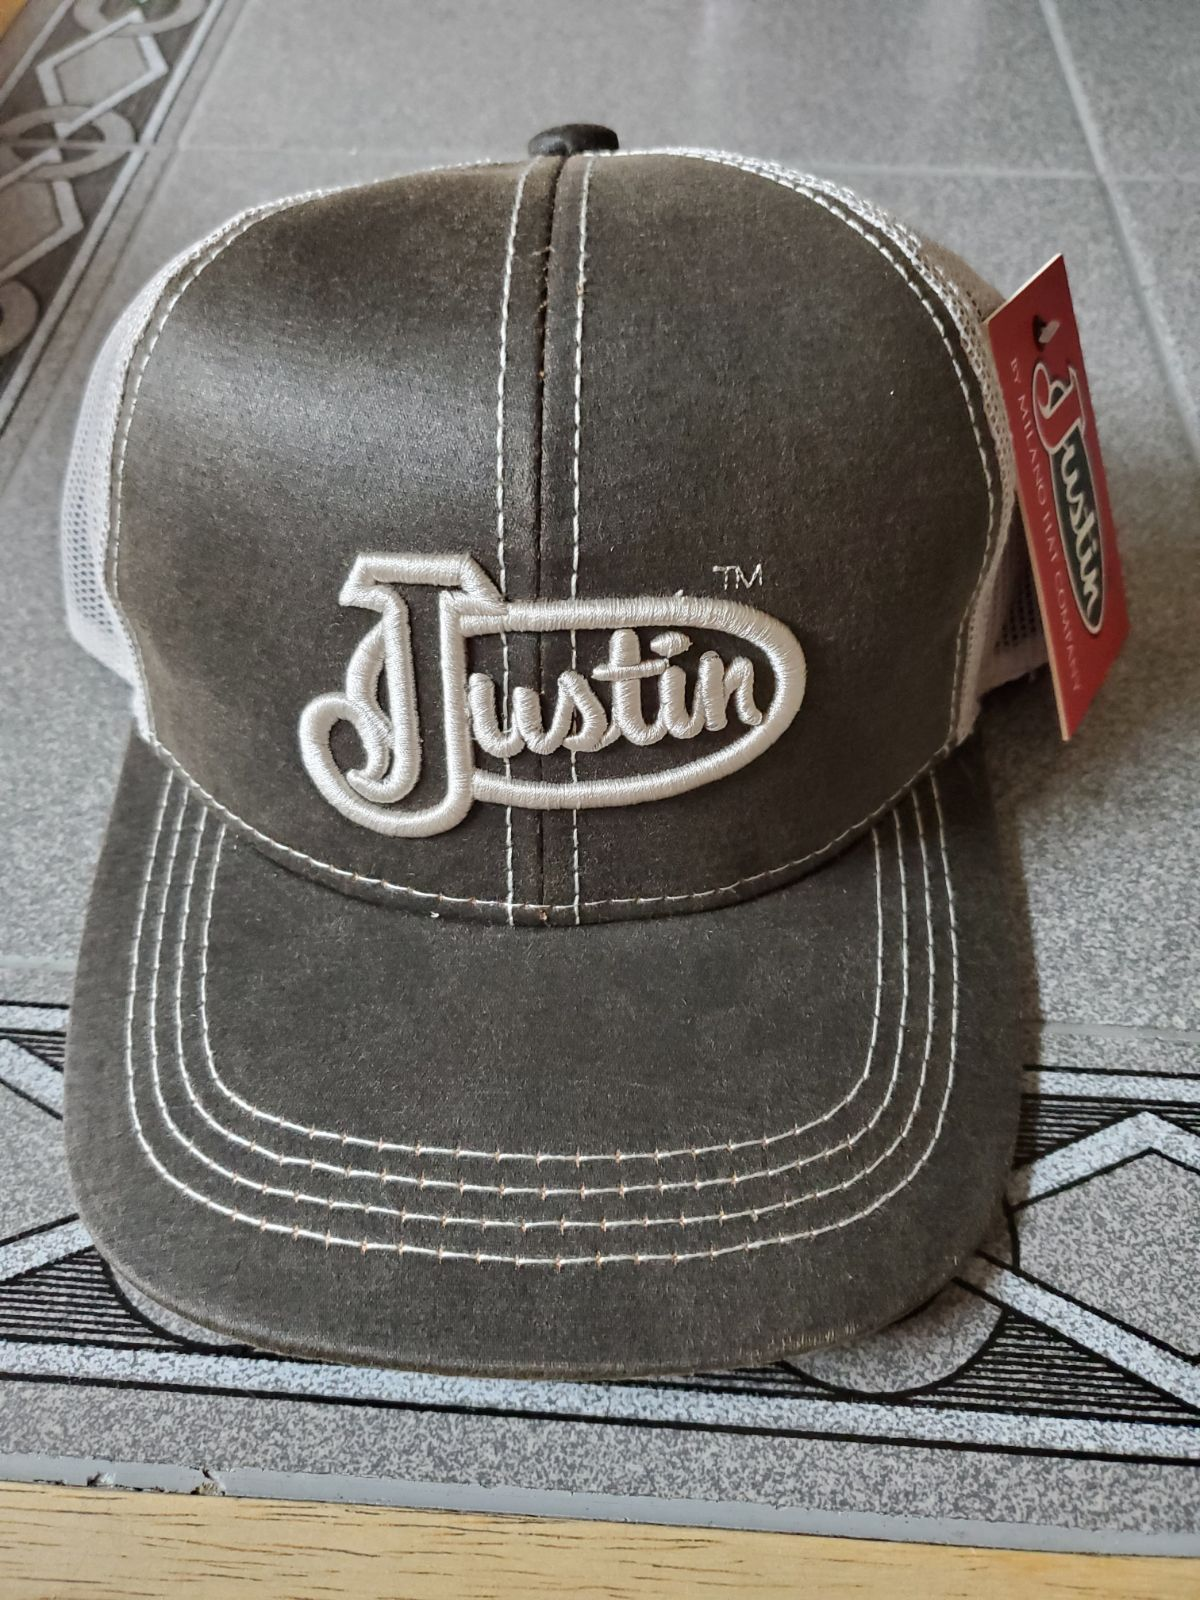 justin boots hat